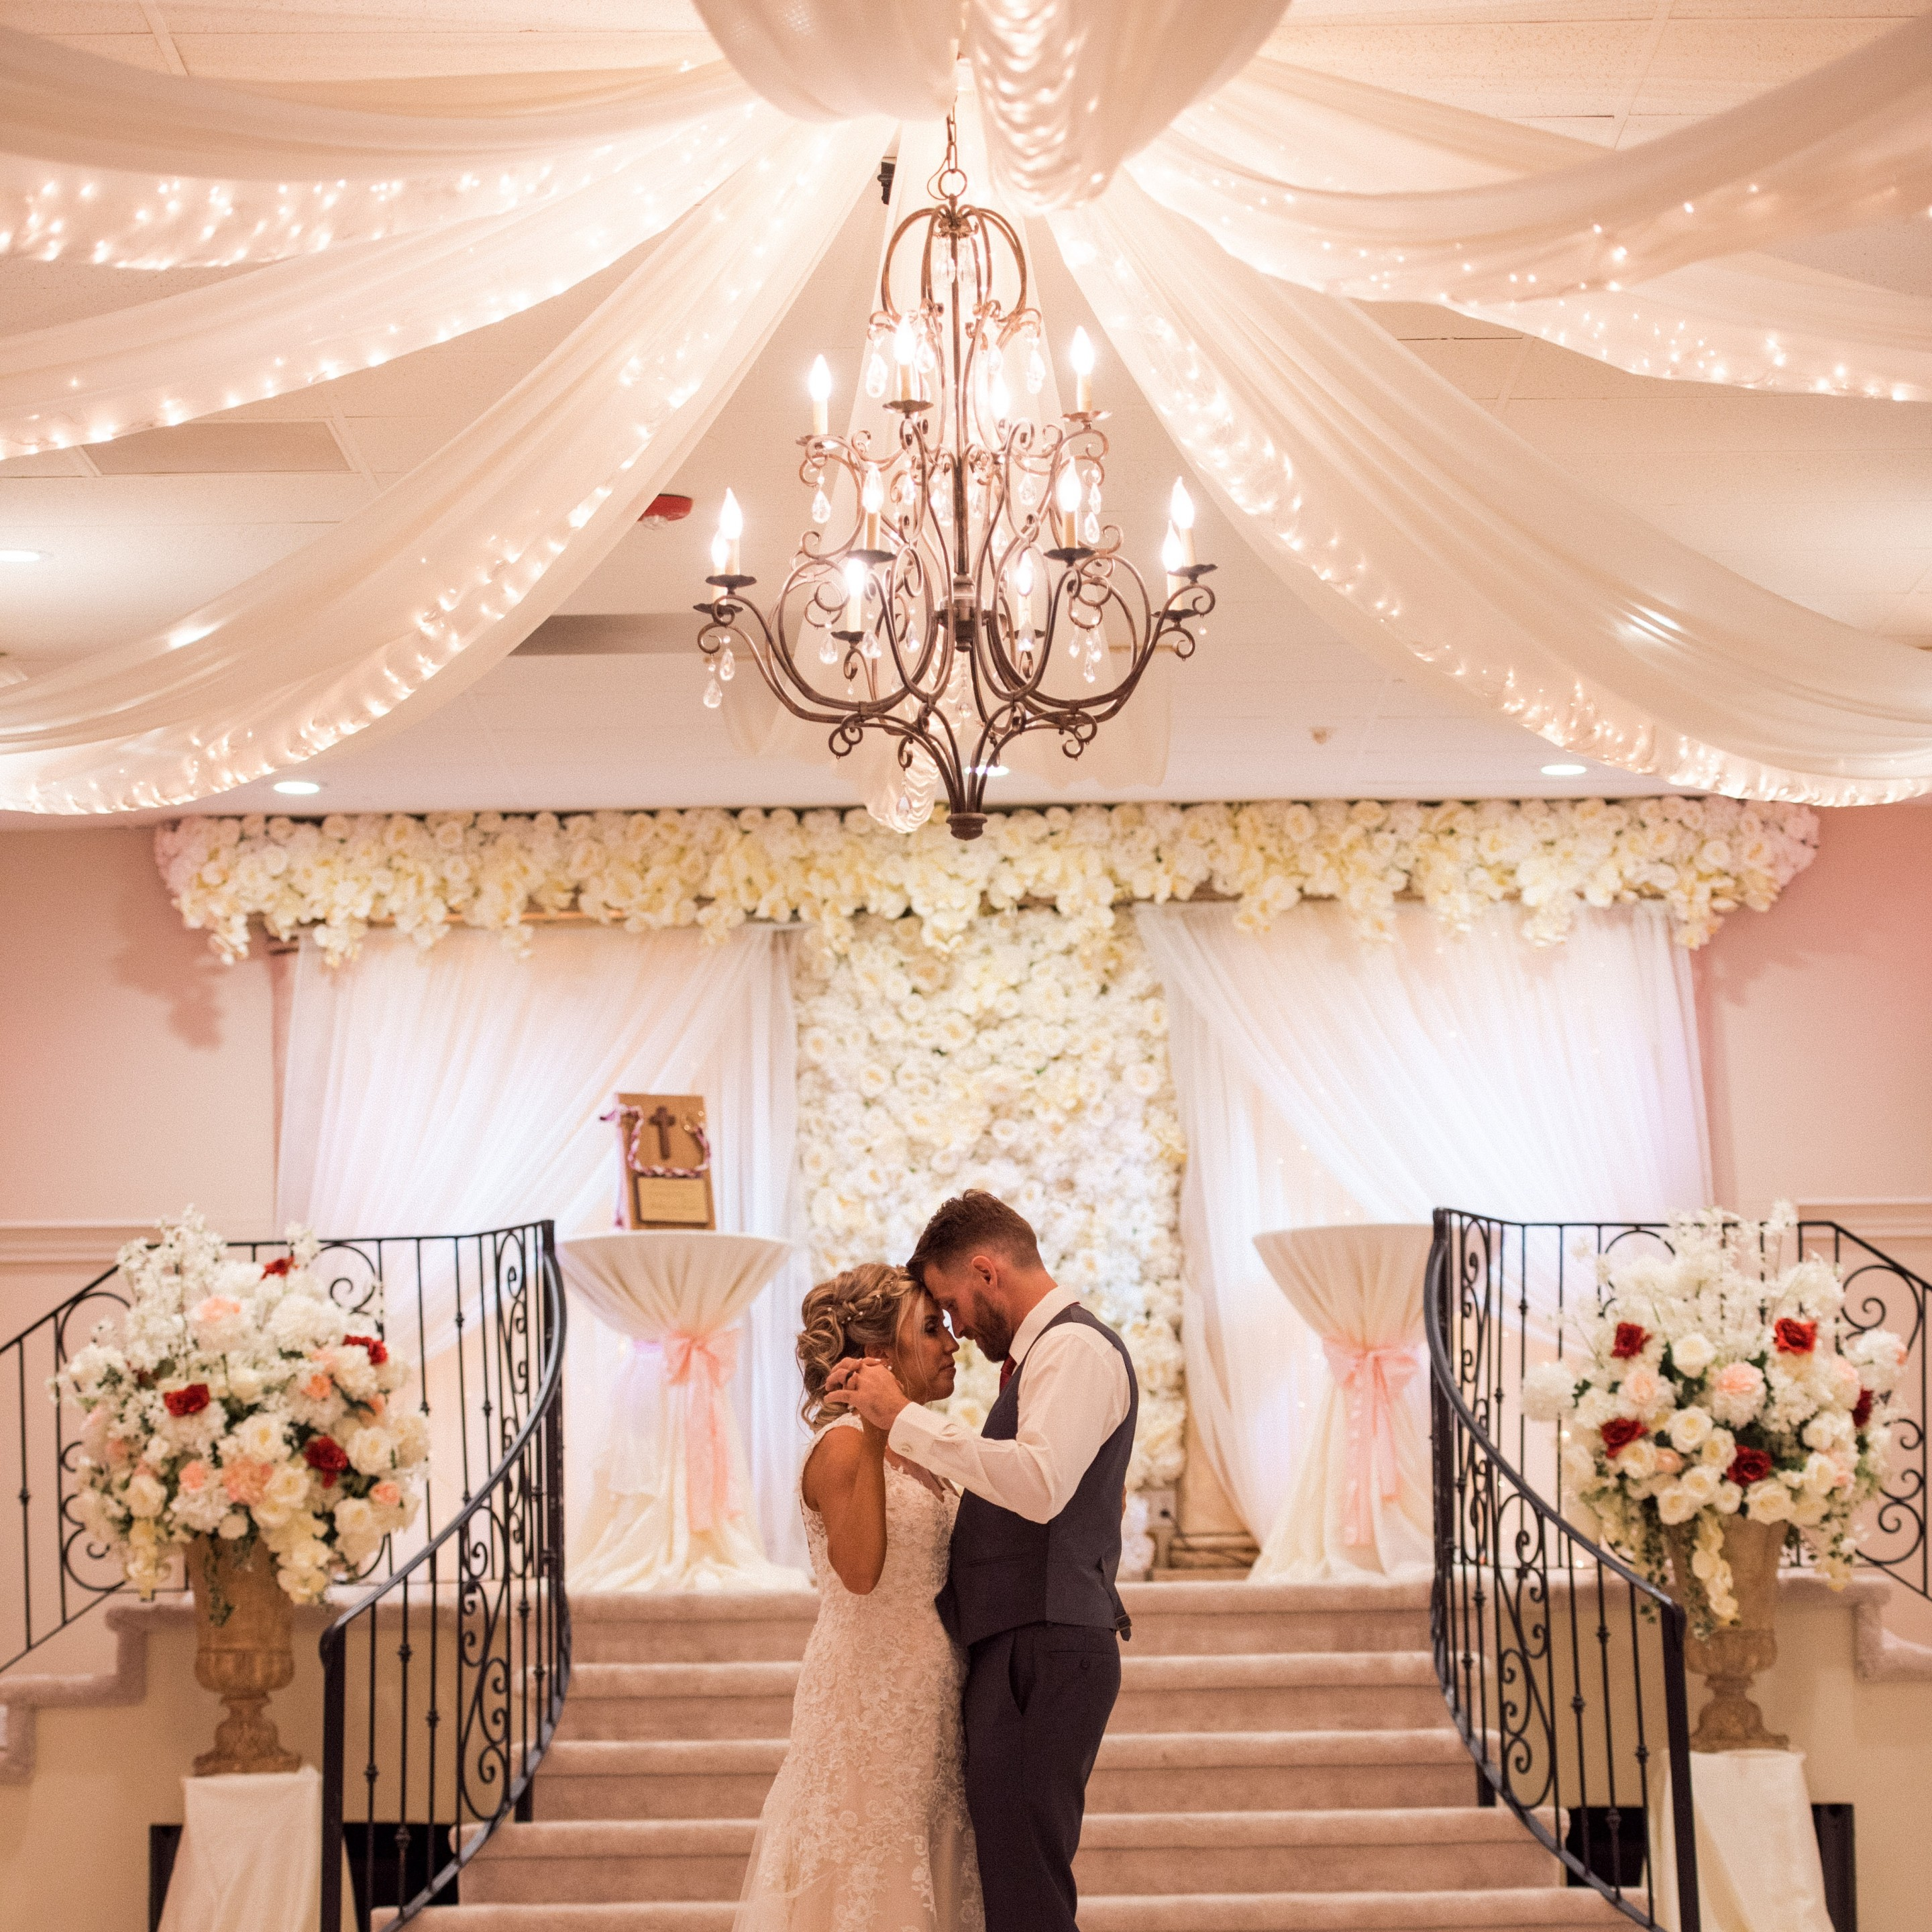 Villa Tuscana Reception Hall in Mesa for Weddings and Quinceanera showing couple dancing in reception hall